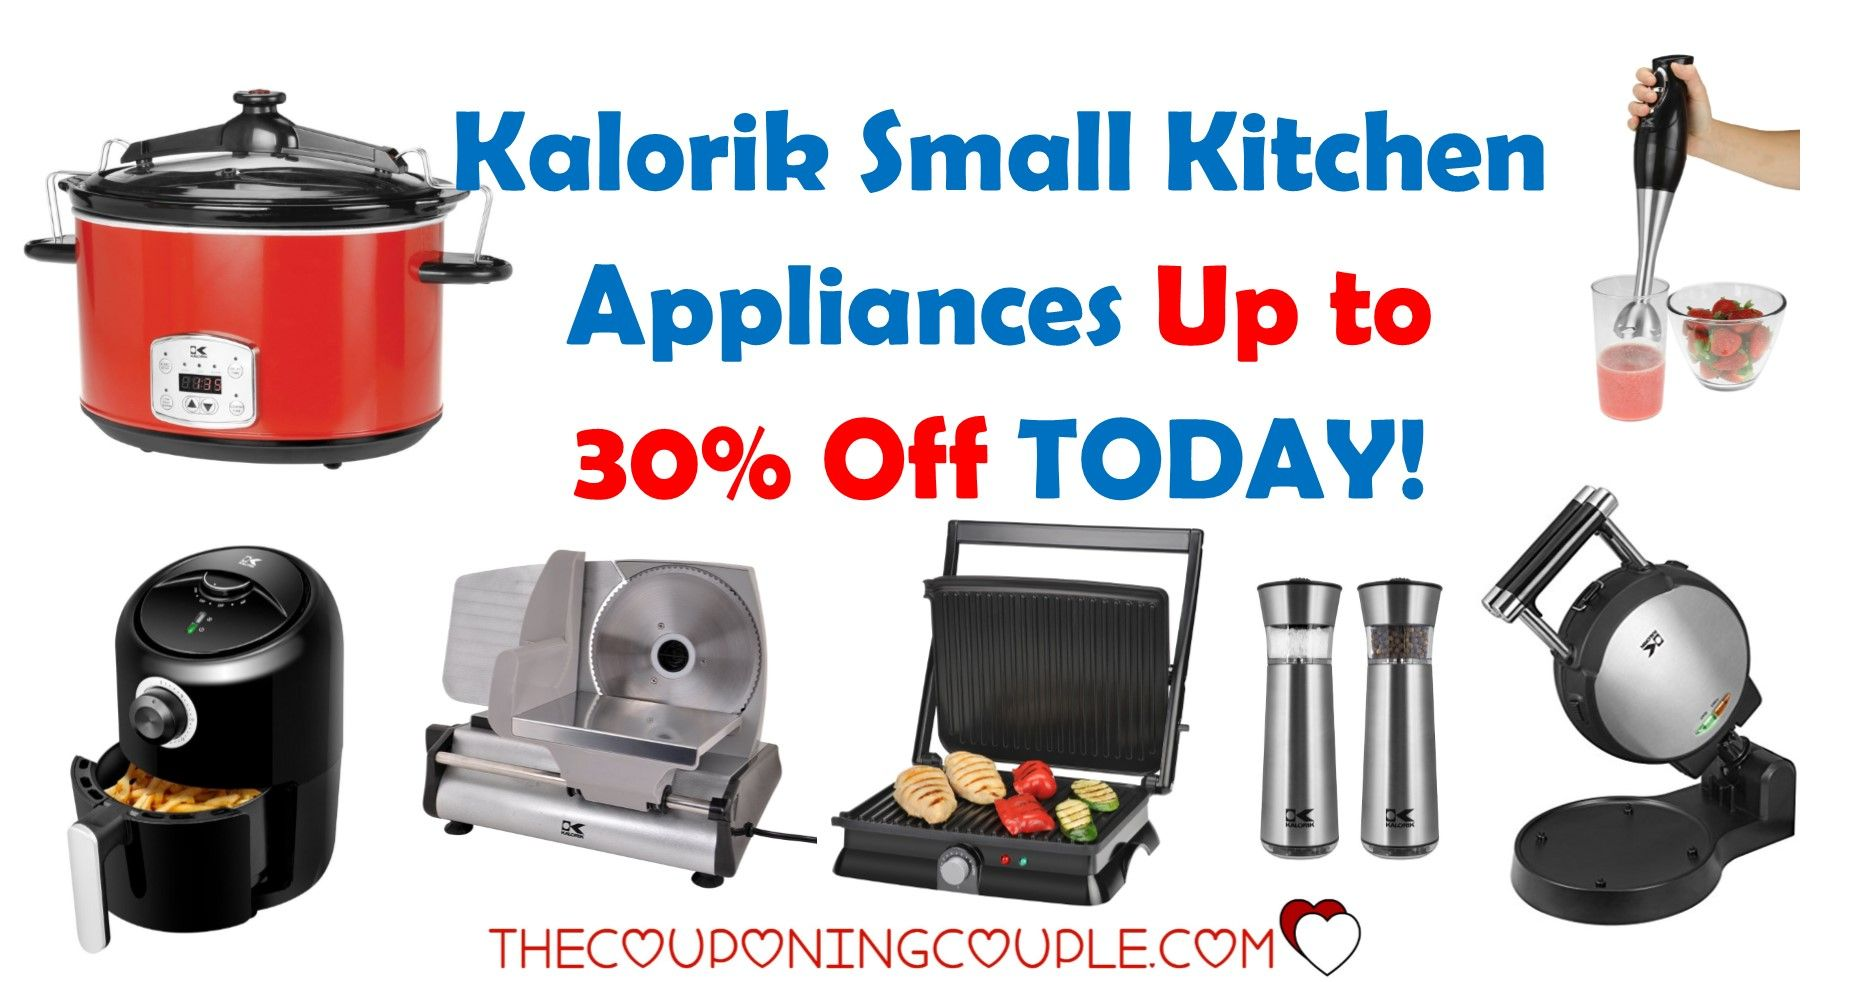 Kalorik Small Kitchen Appliances Up to 30% Off Today! | Store ads ...